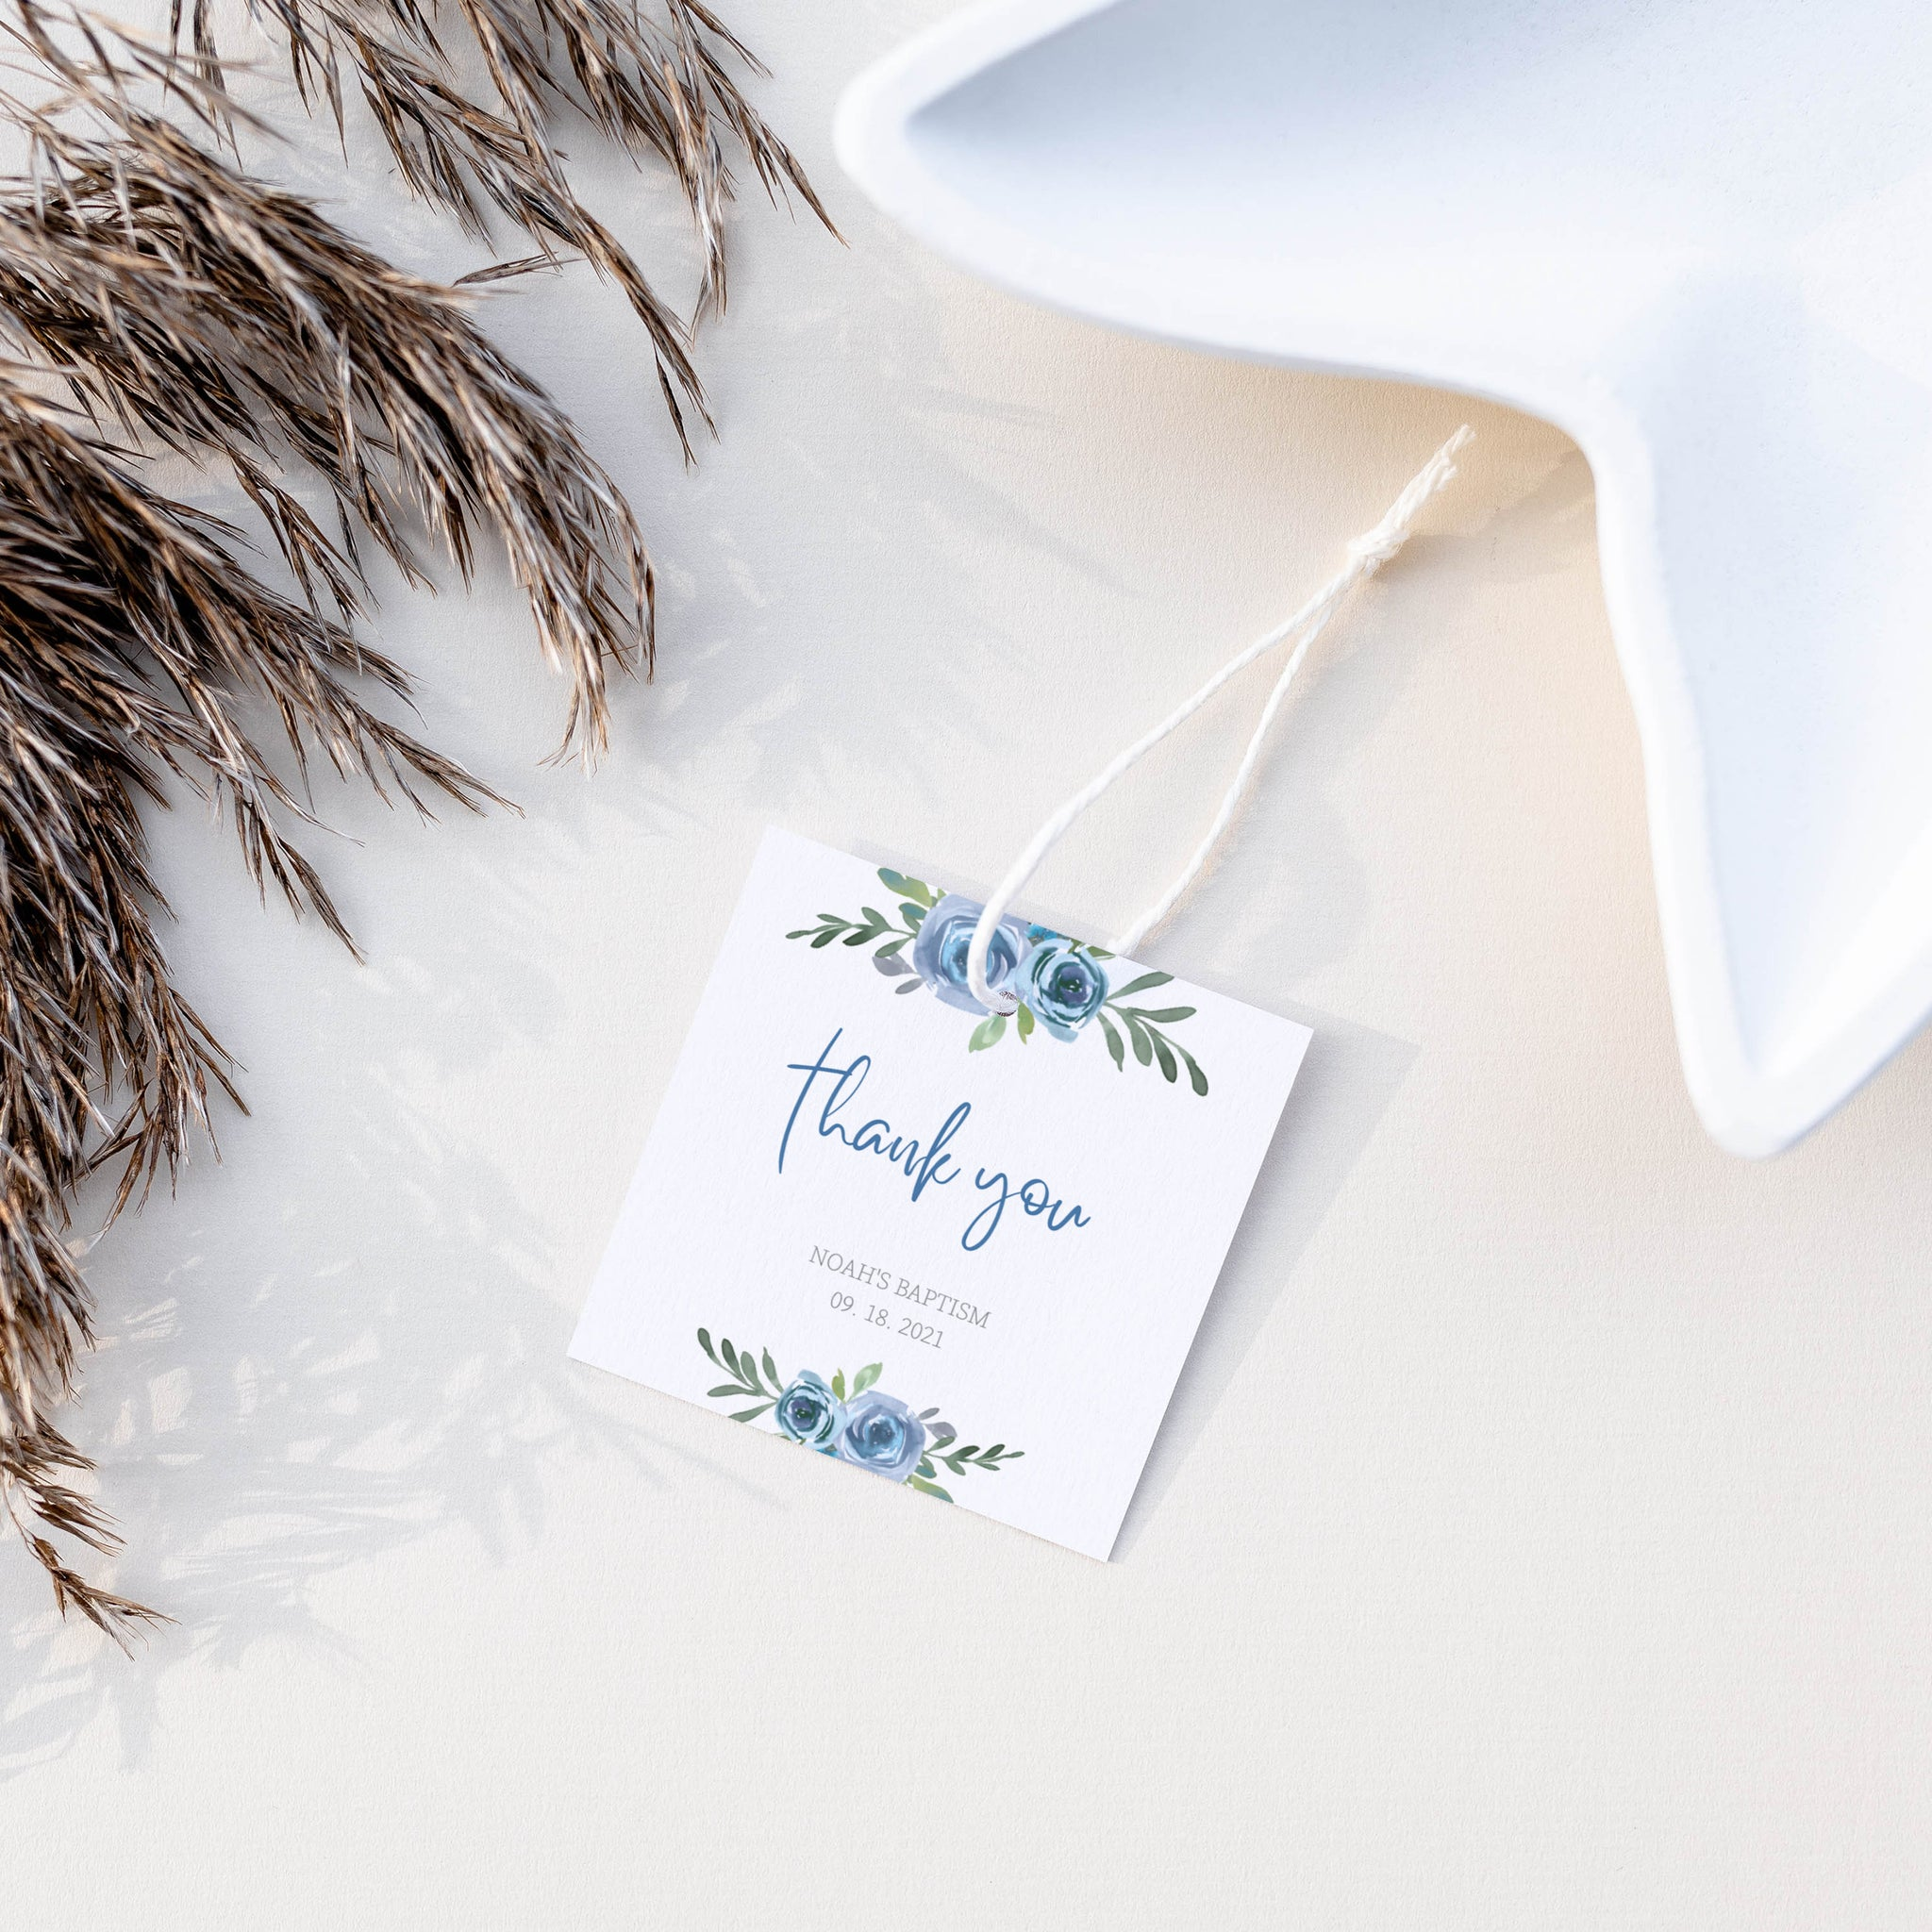 Blue Floral Baptism Favor Tag Template, Boy Baptism Thank You Tags Printable, Round Square Rectangle, Editable DIGITAL DOWNLOAD BF100